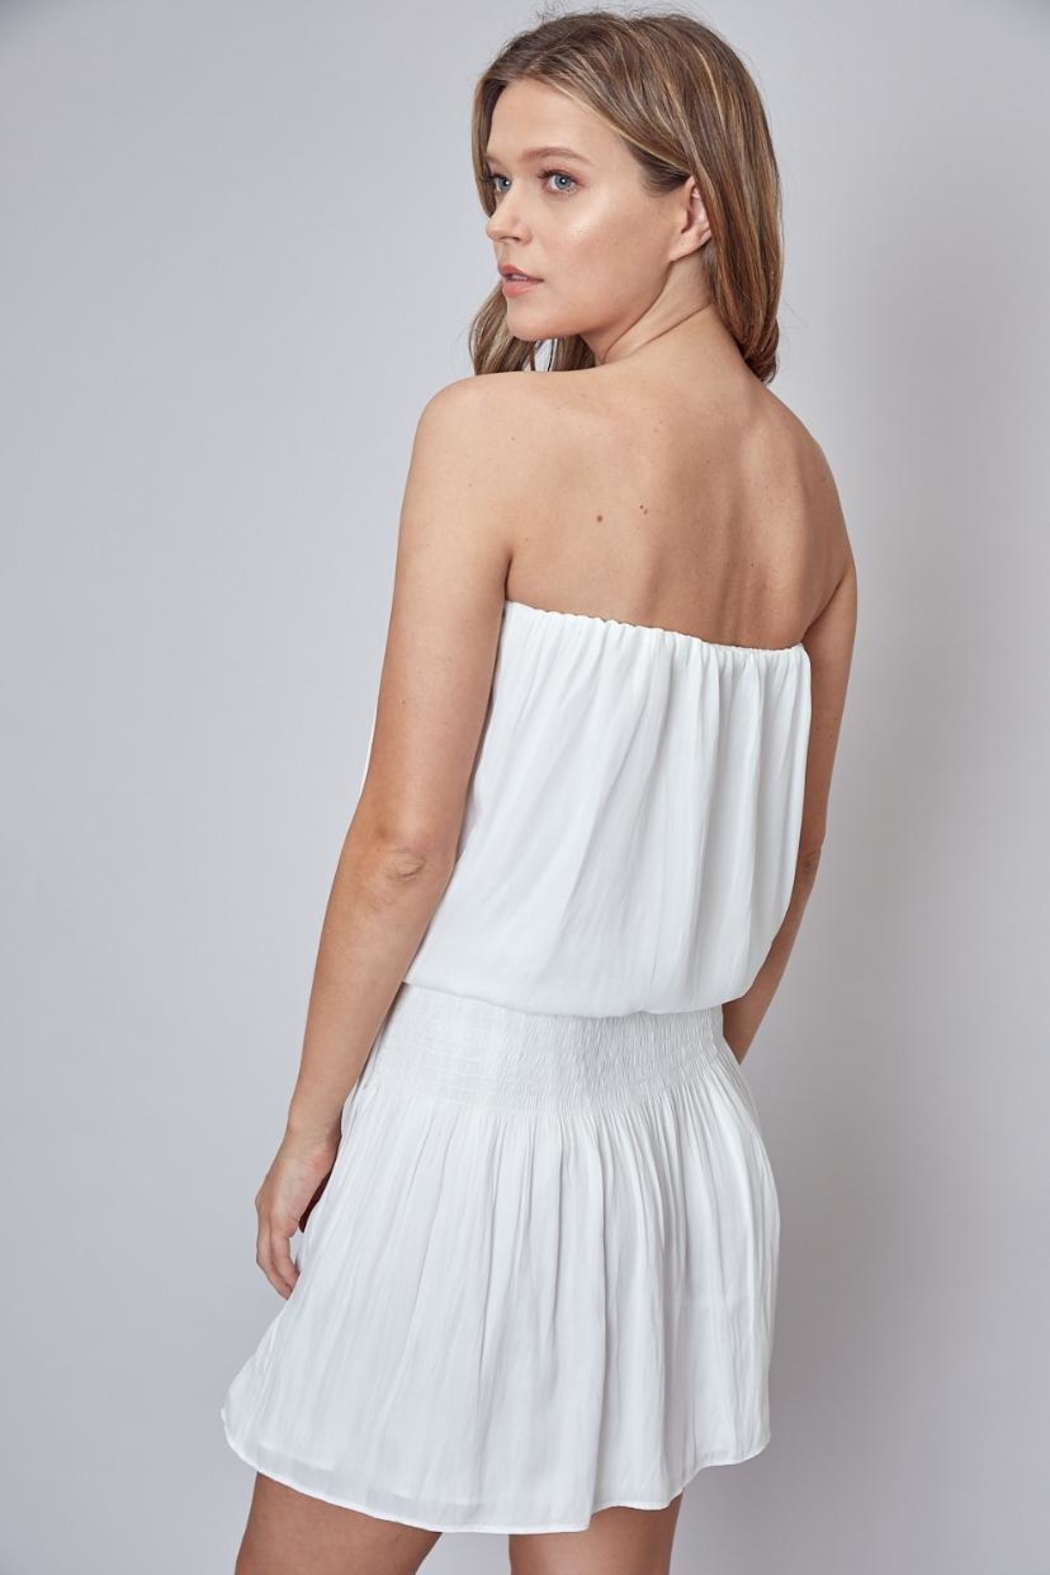 Do & Be White Strapless Dress - Side Cropped Image